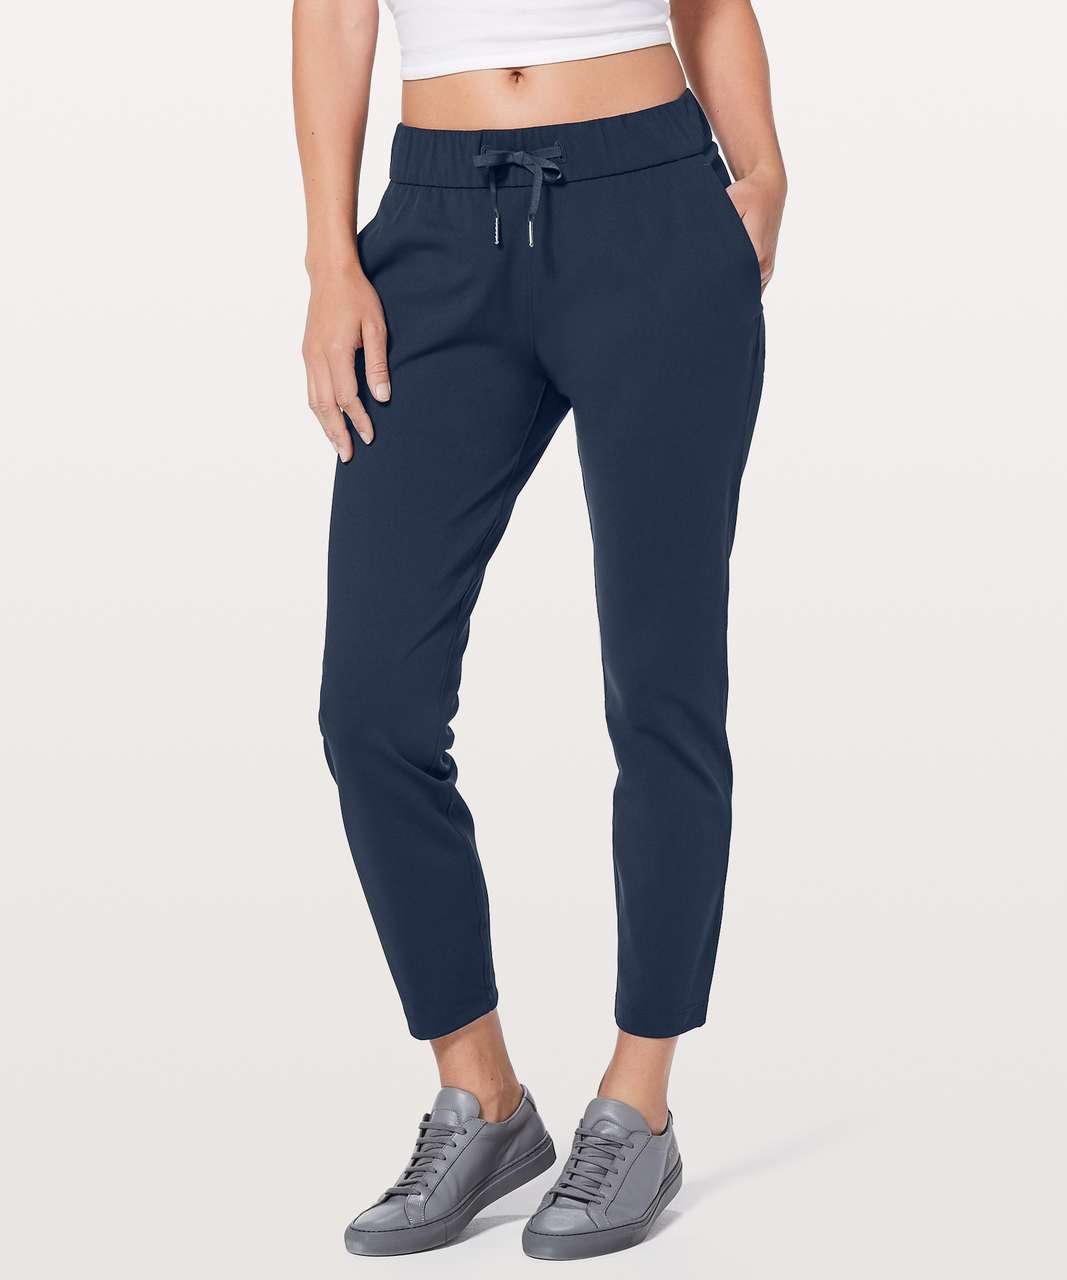 "Lululemon On The Fly Pant *28"" - True Navy (First Release)"